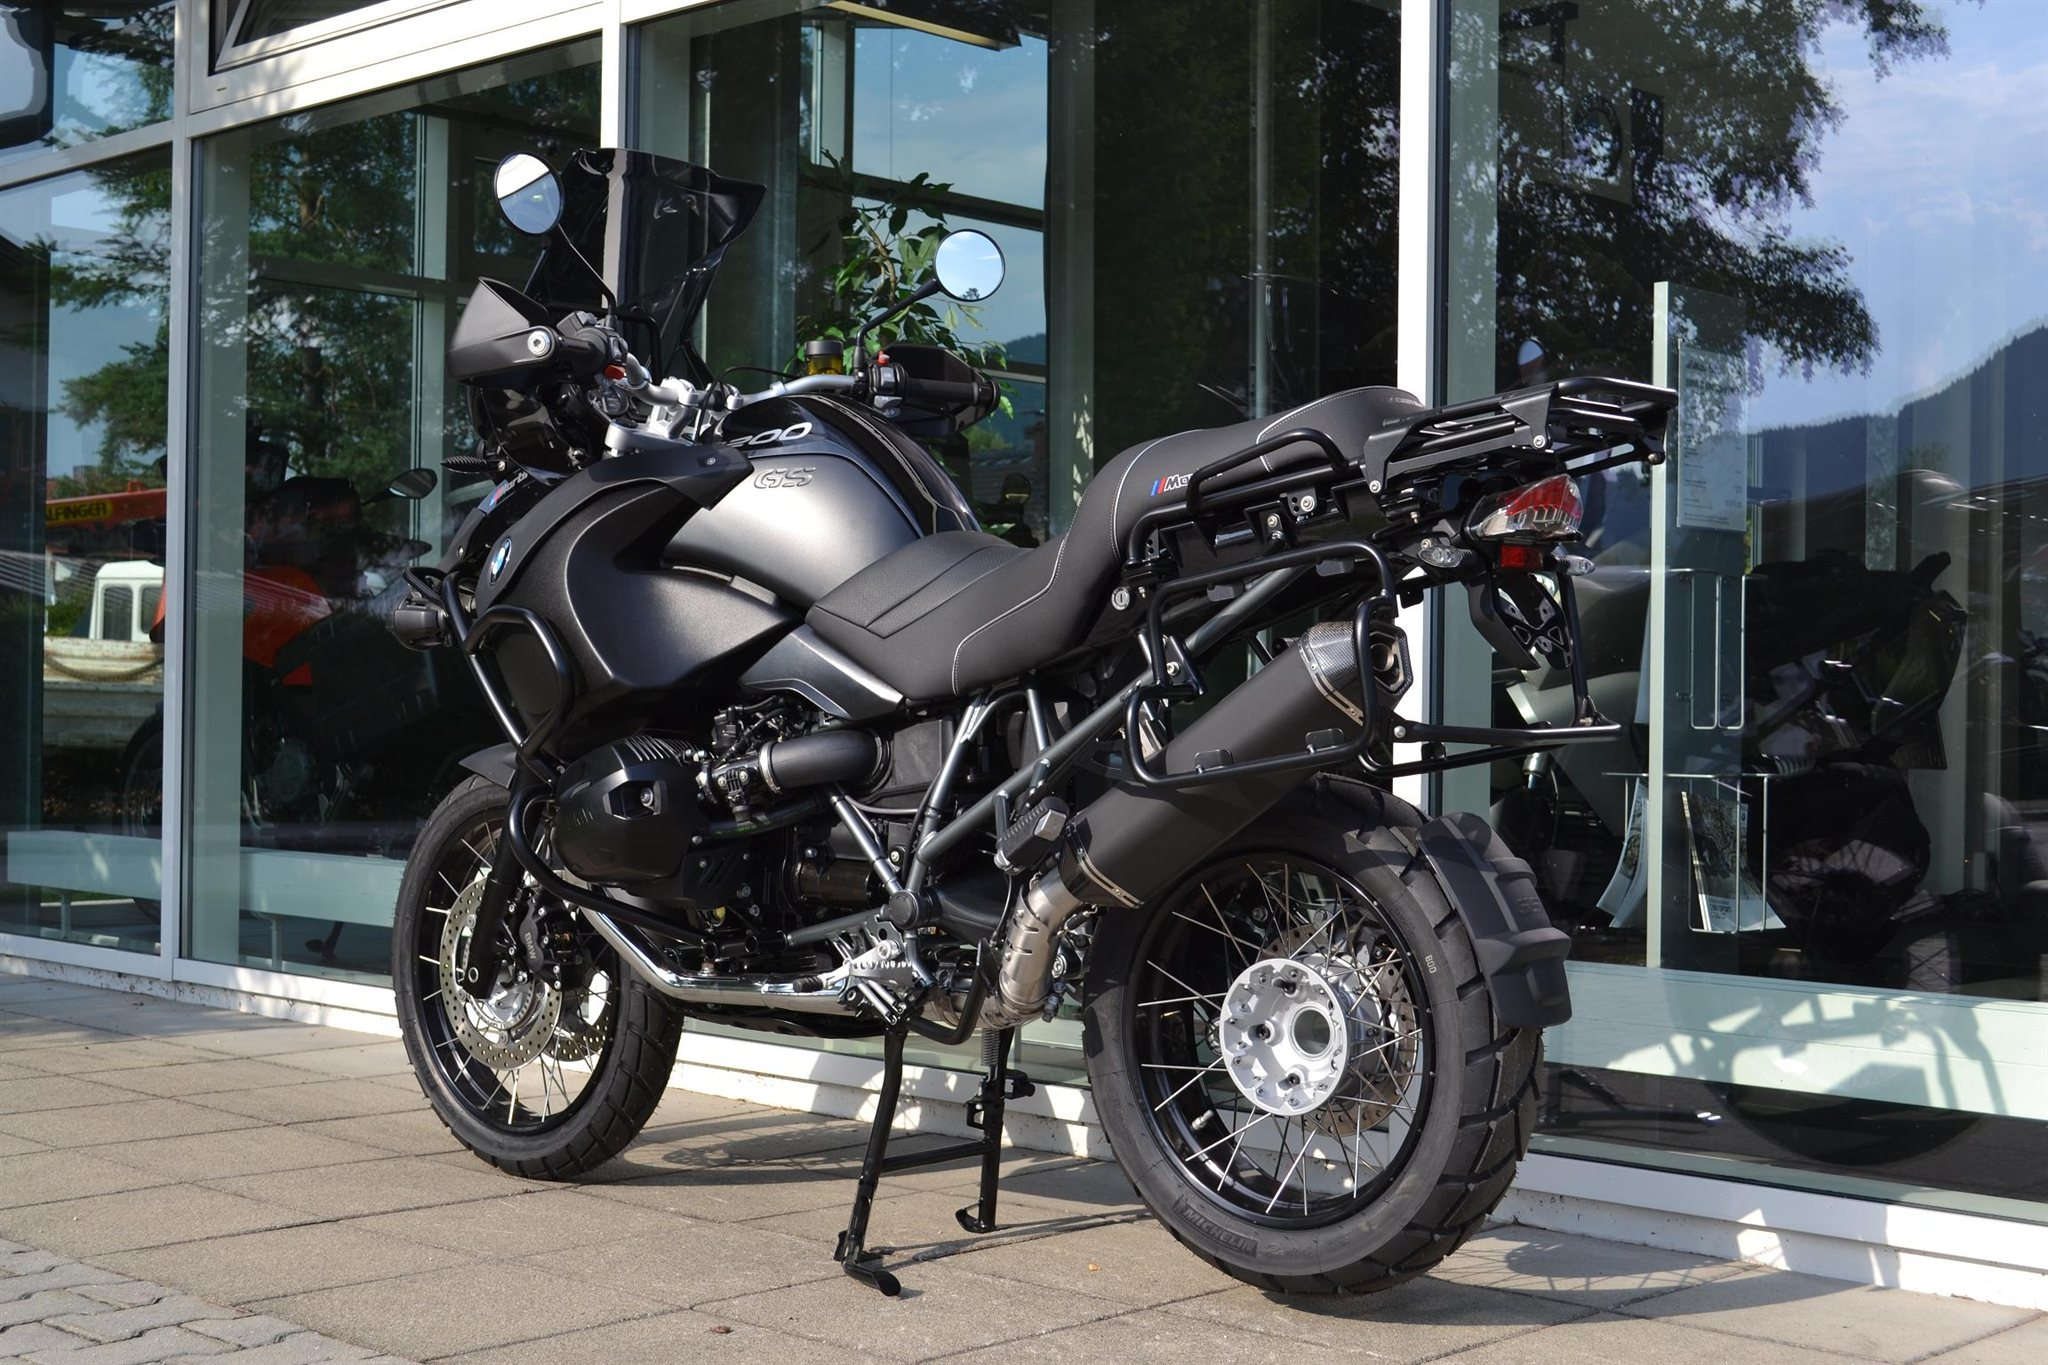 umgebautes motorrad bmw r 1200 gs adventure von erwin. Black Bedroom Furniture Sets. Home Design Ideas